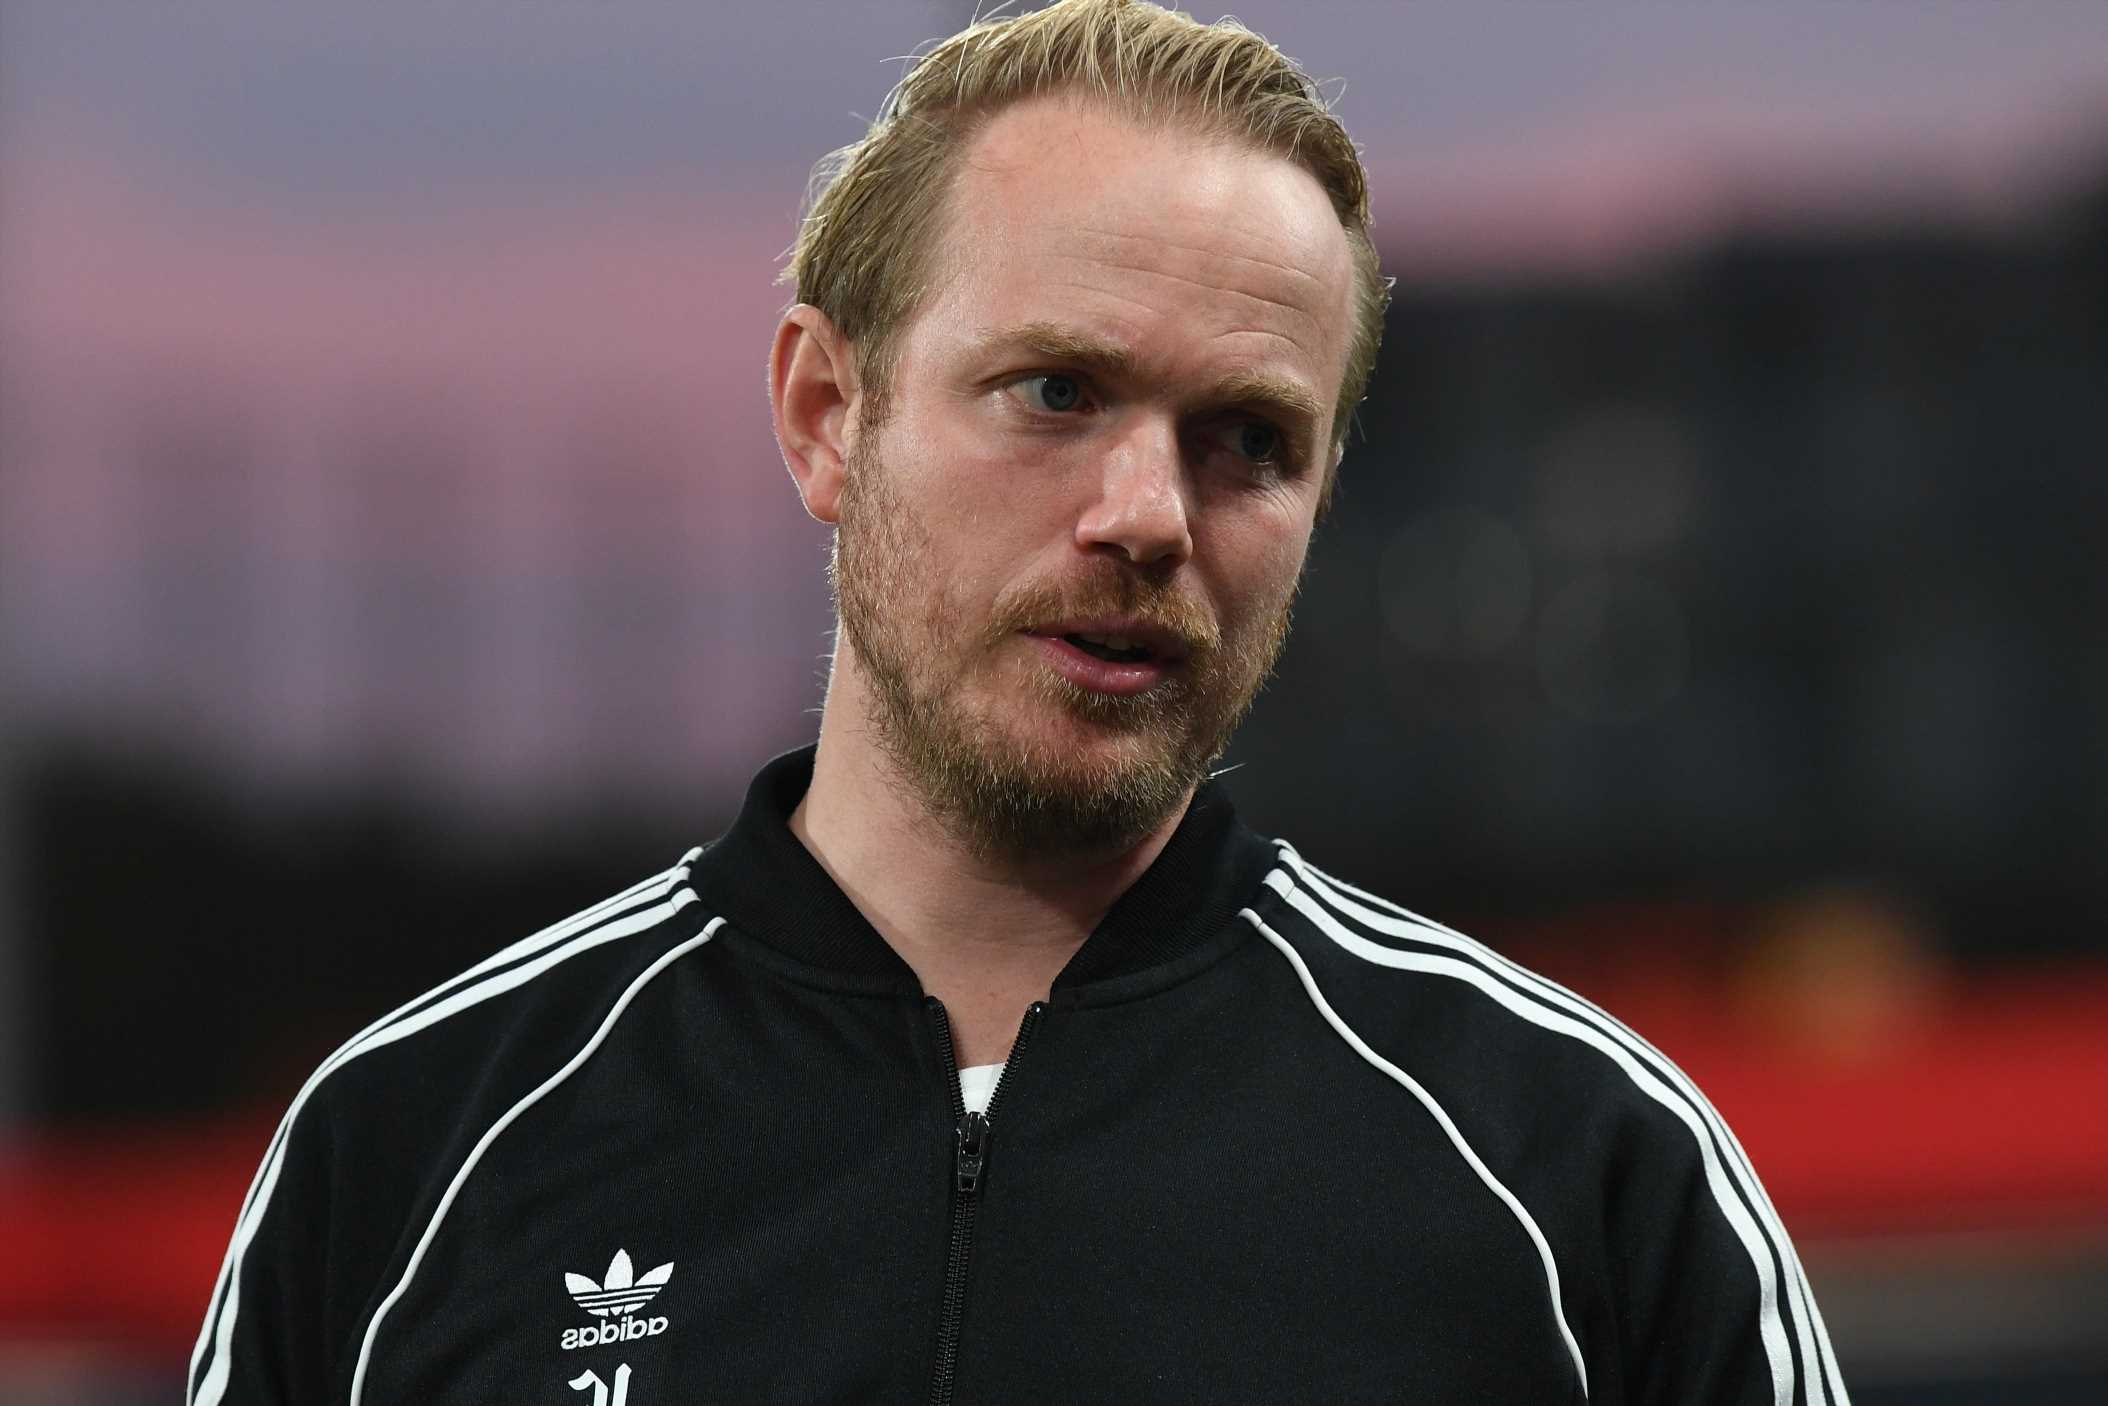 Gunners boss Eidevall wants Arsenal to have a gold medal-winning attitude and opens up on football playing dreams